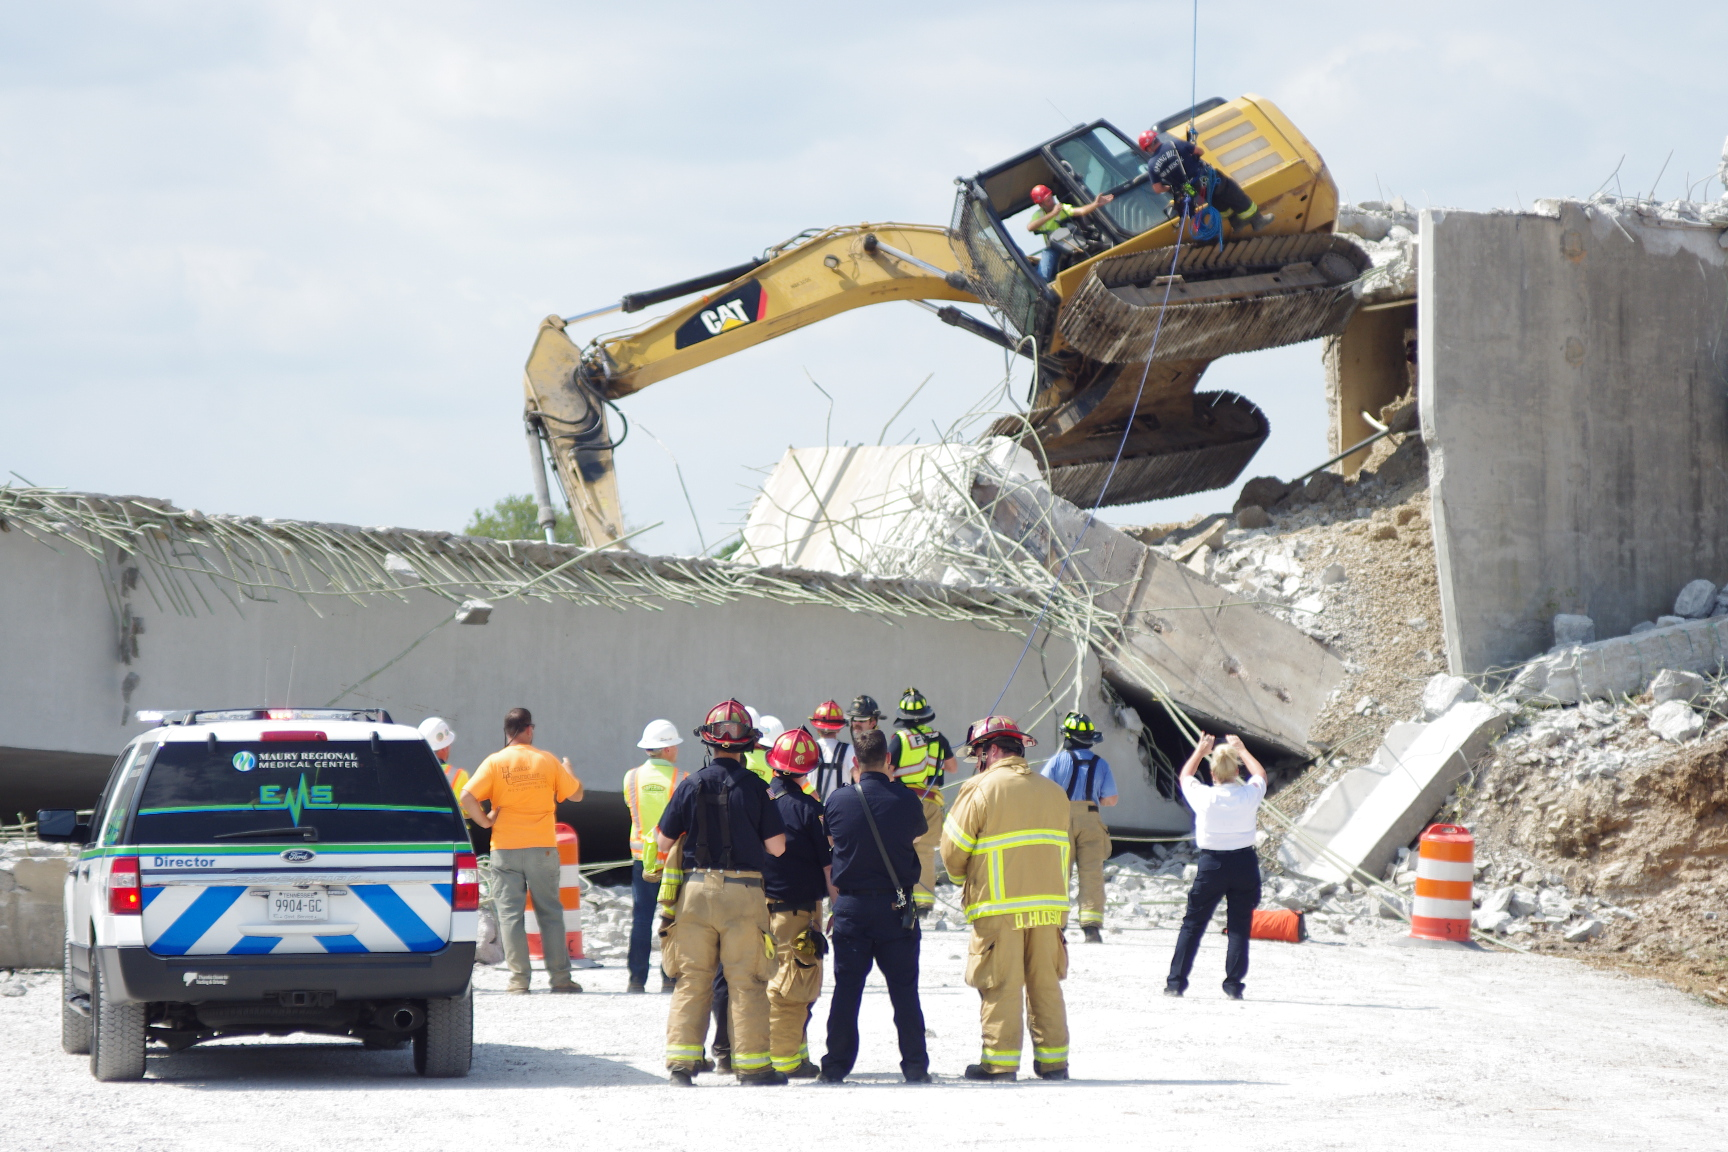 Construction worker rescued by Spring Hill Fire Department after bridge collapses